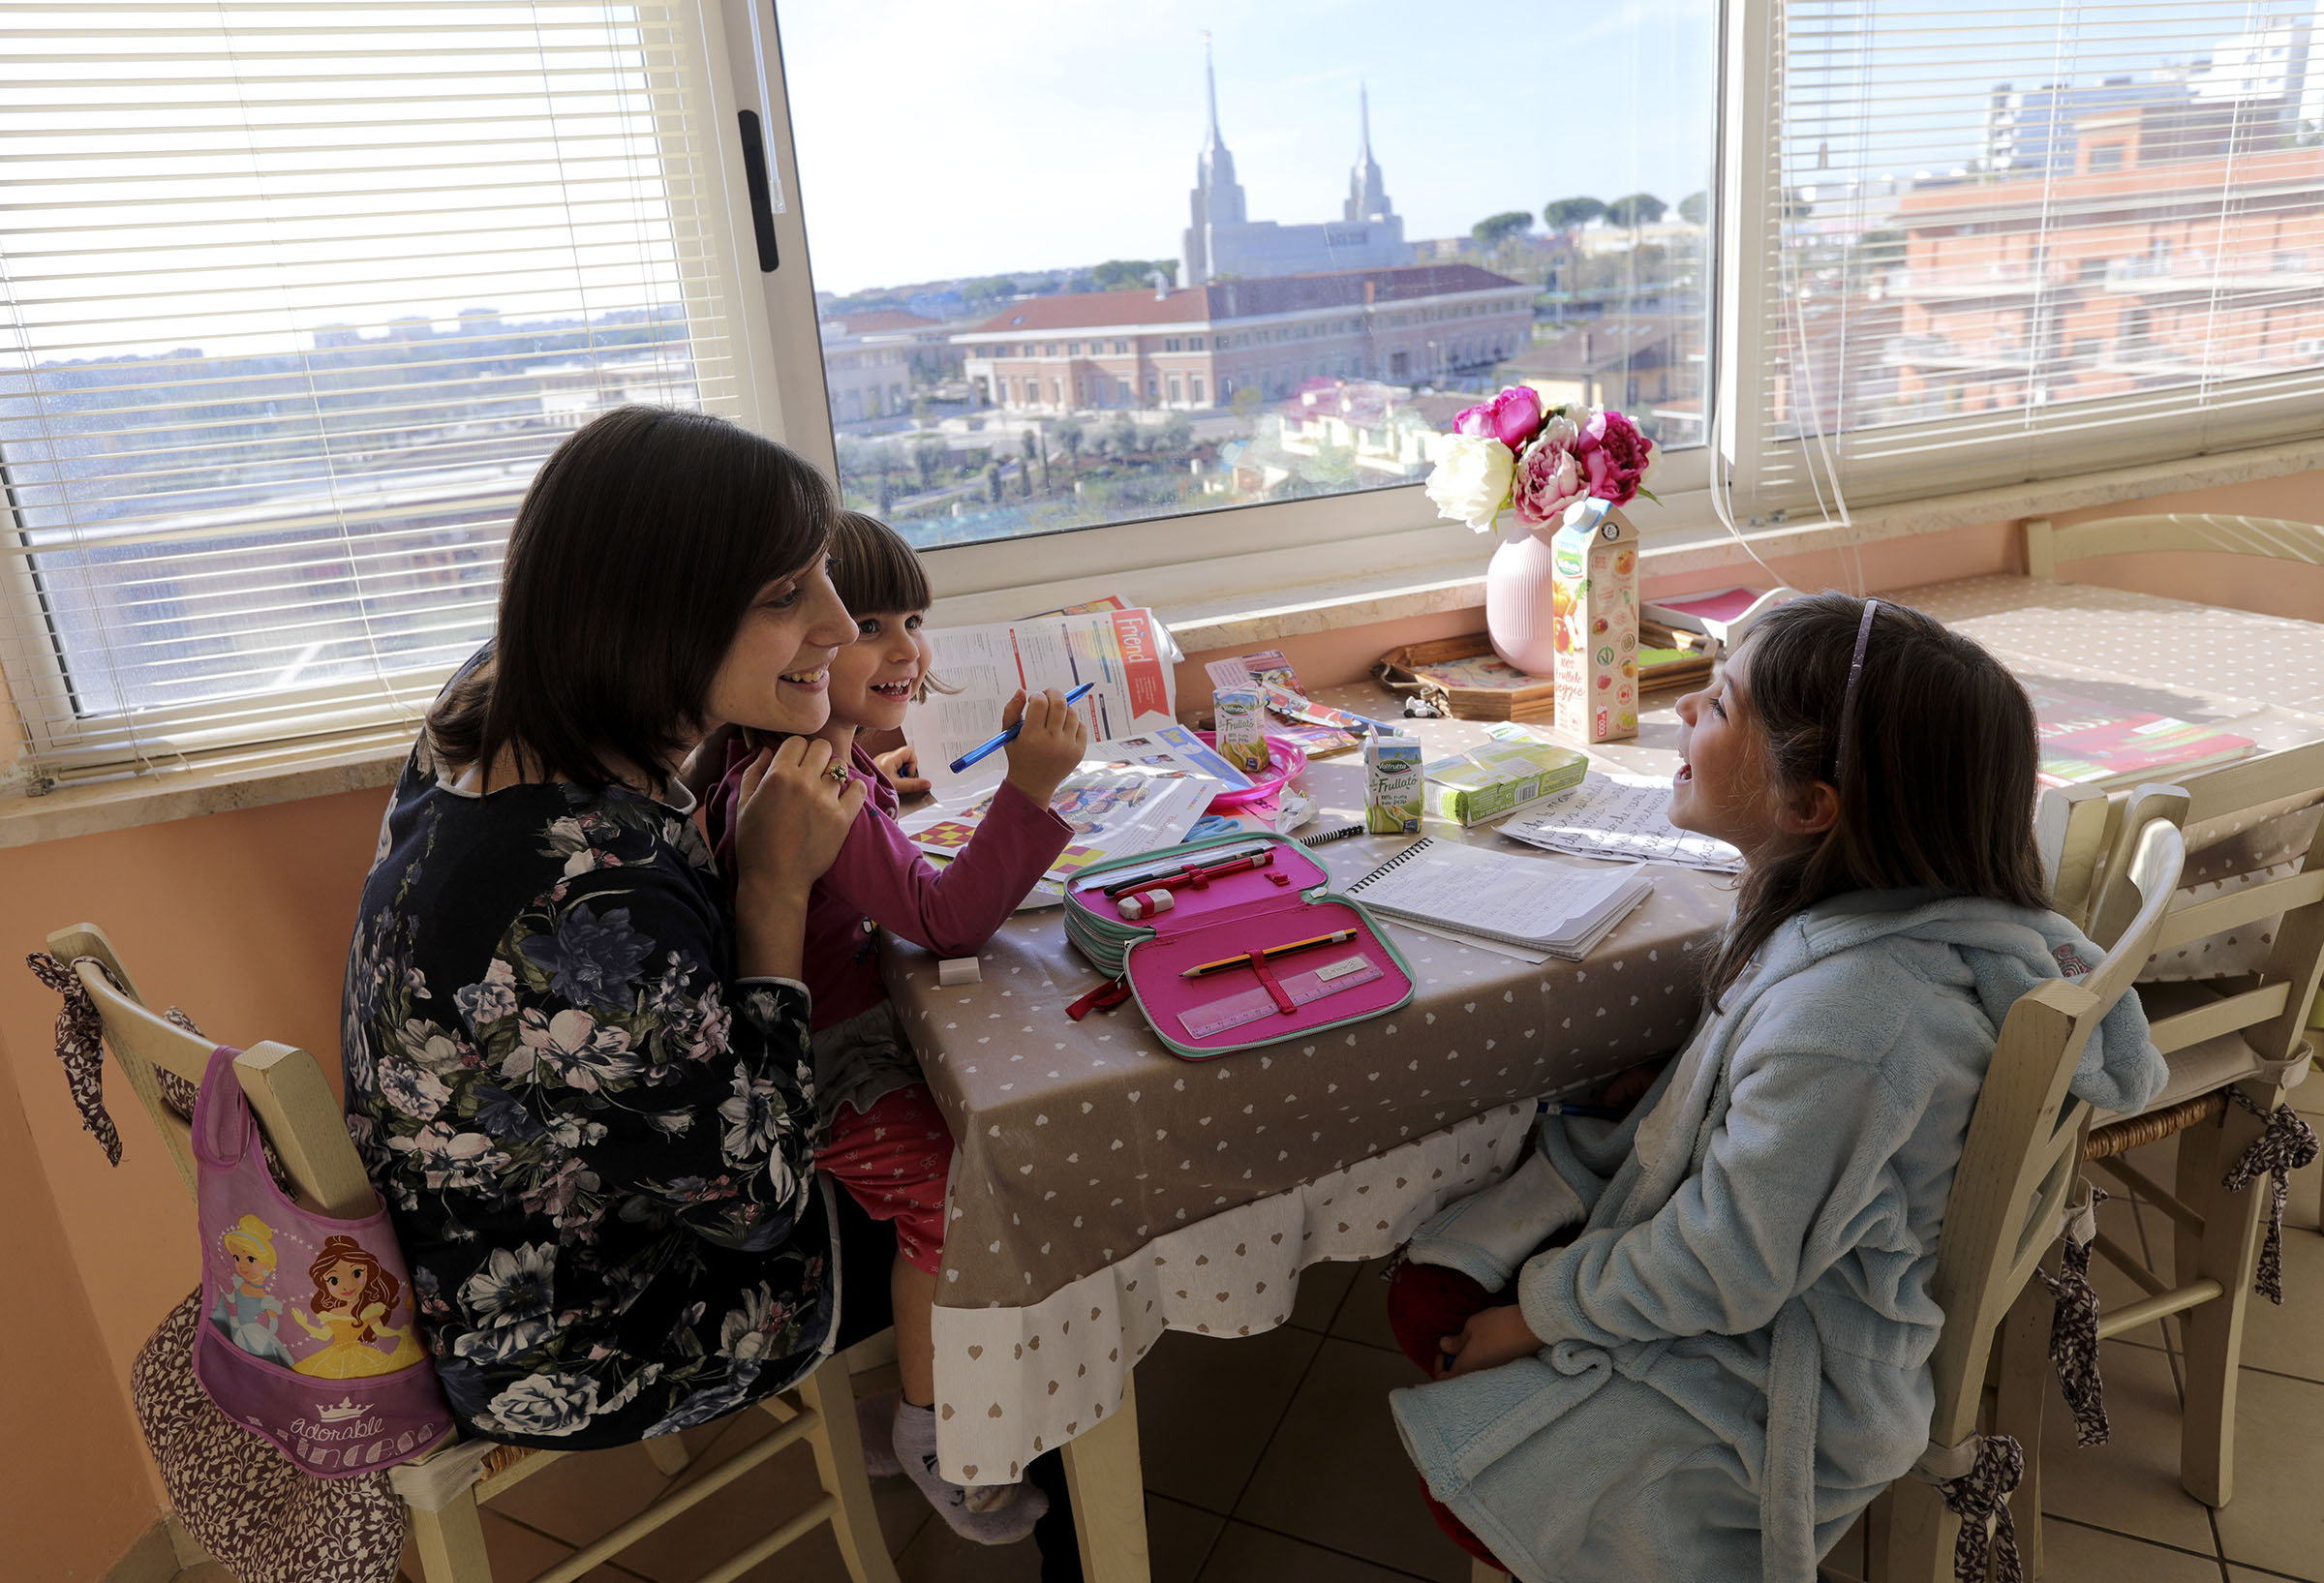 Norma Salerno chats with her daughters, Alice and Emma, at the kitchen table, with an overlooking view of the the Rome Italy Temple, at their Rome apartment on Sunday morning, Nov. 18, 2018.